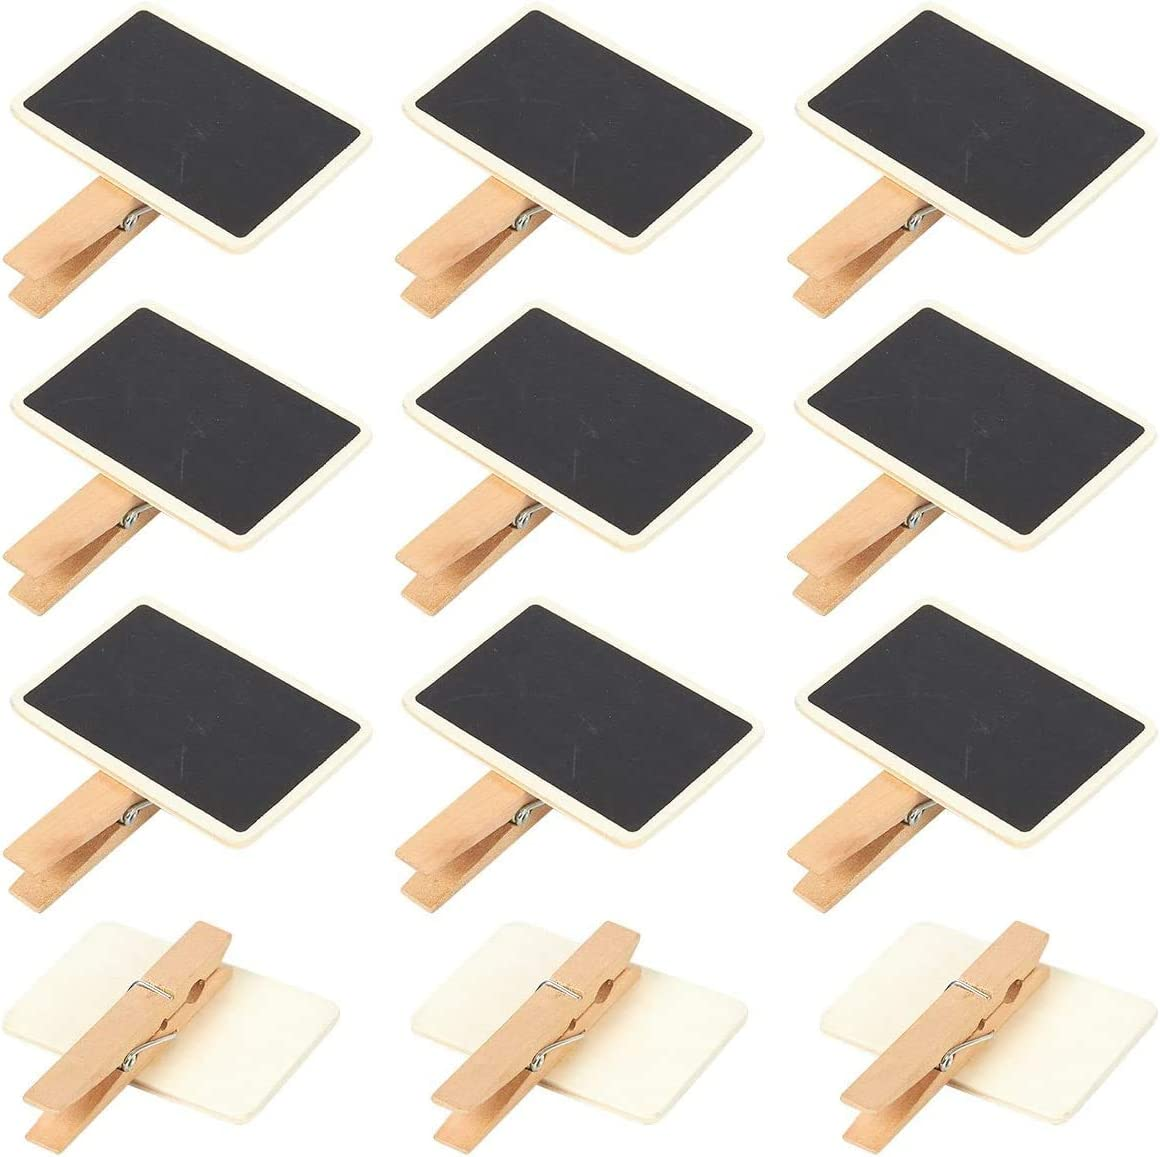 24 PCS Chalkboards Blackboards with Wooden Blackboard Clip Message Board Signs and Labels Clips for Memo, Note Taking, Food Label, Party - Message Board Signs and Daily Home Decoration